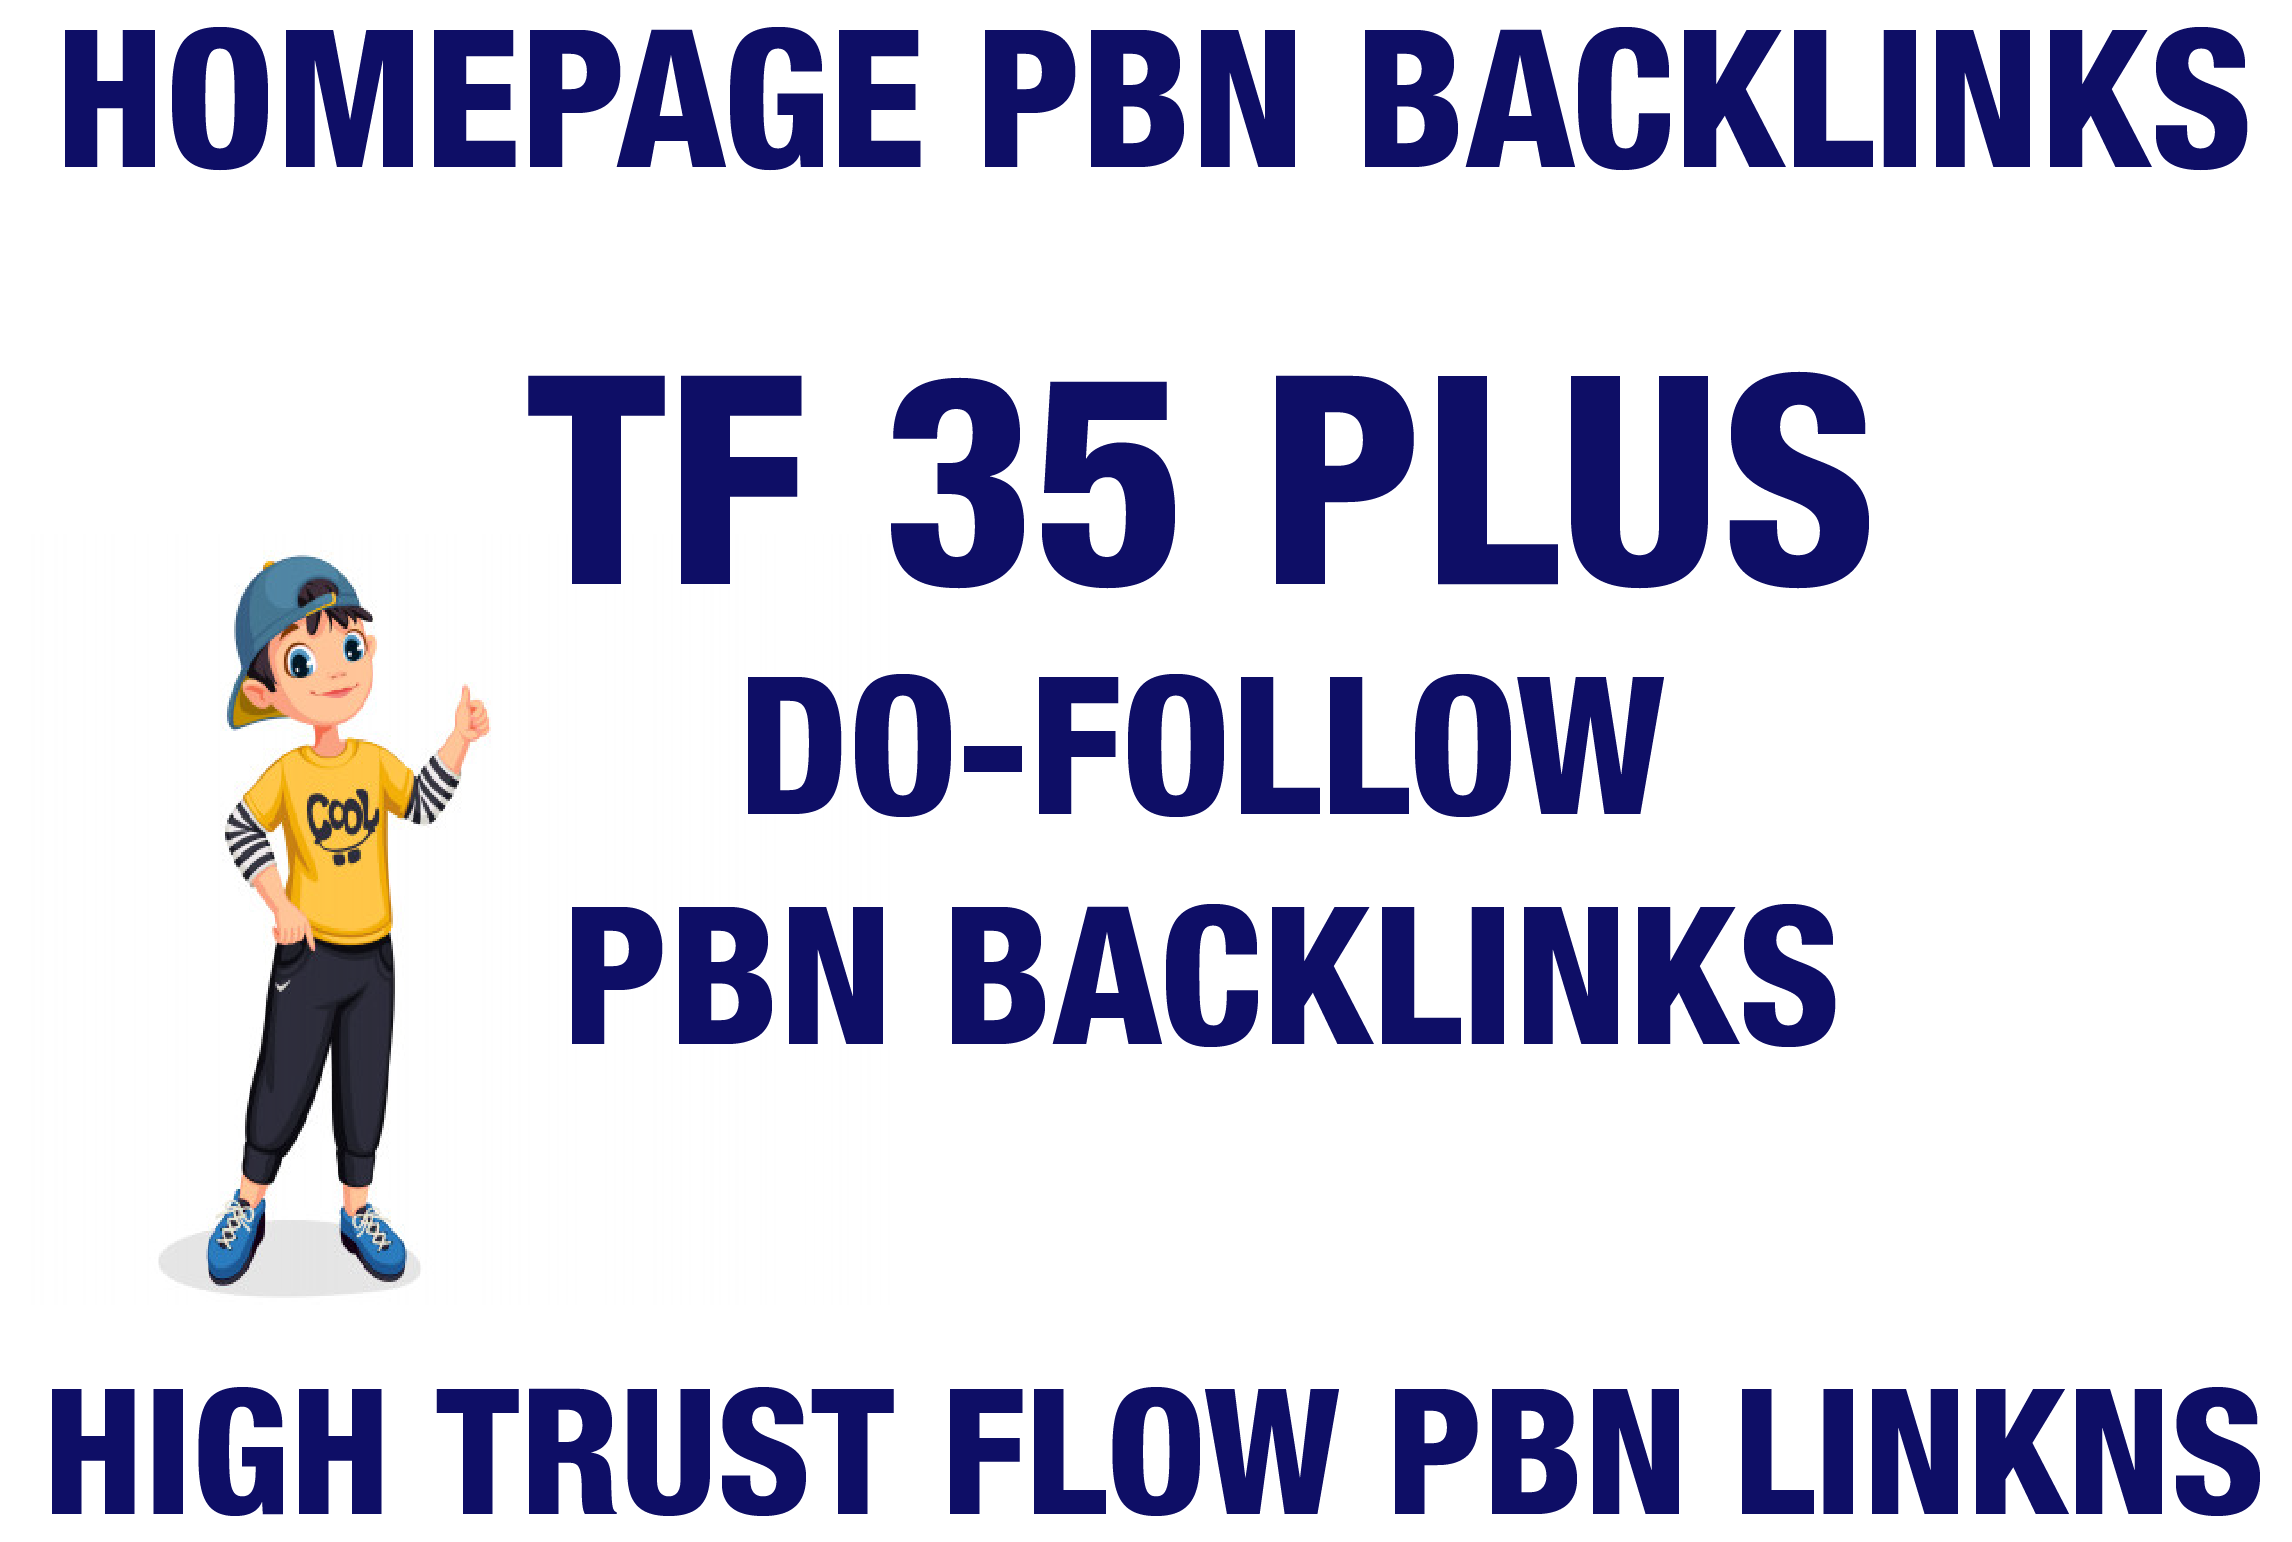 MAJESTIC TRUST FLOW 30 PLUS 5 HOMEPAGE PBN DOFOLLOW BACKLINKS